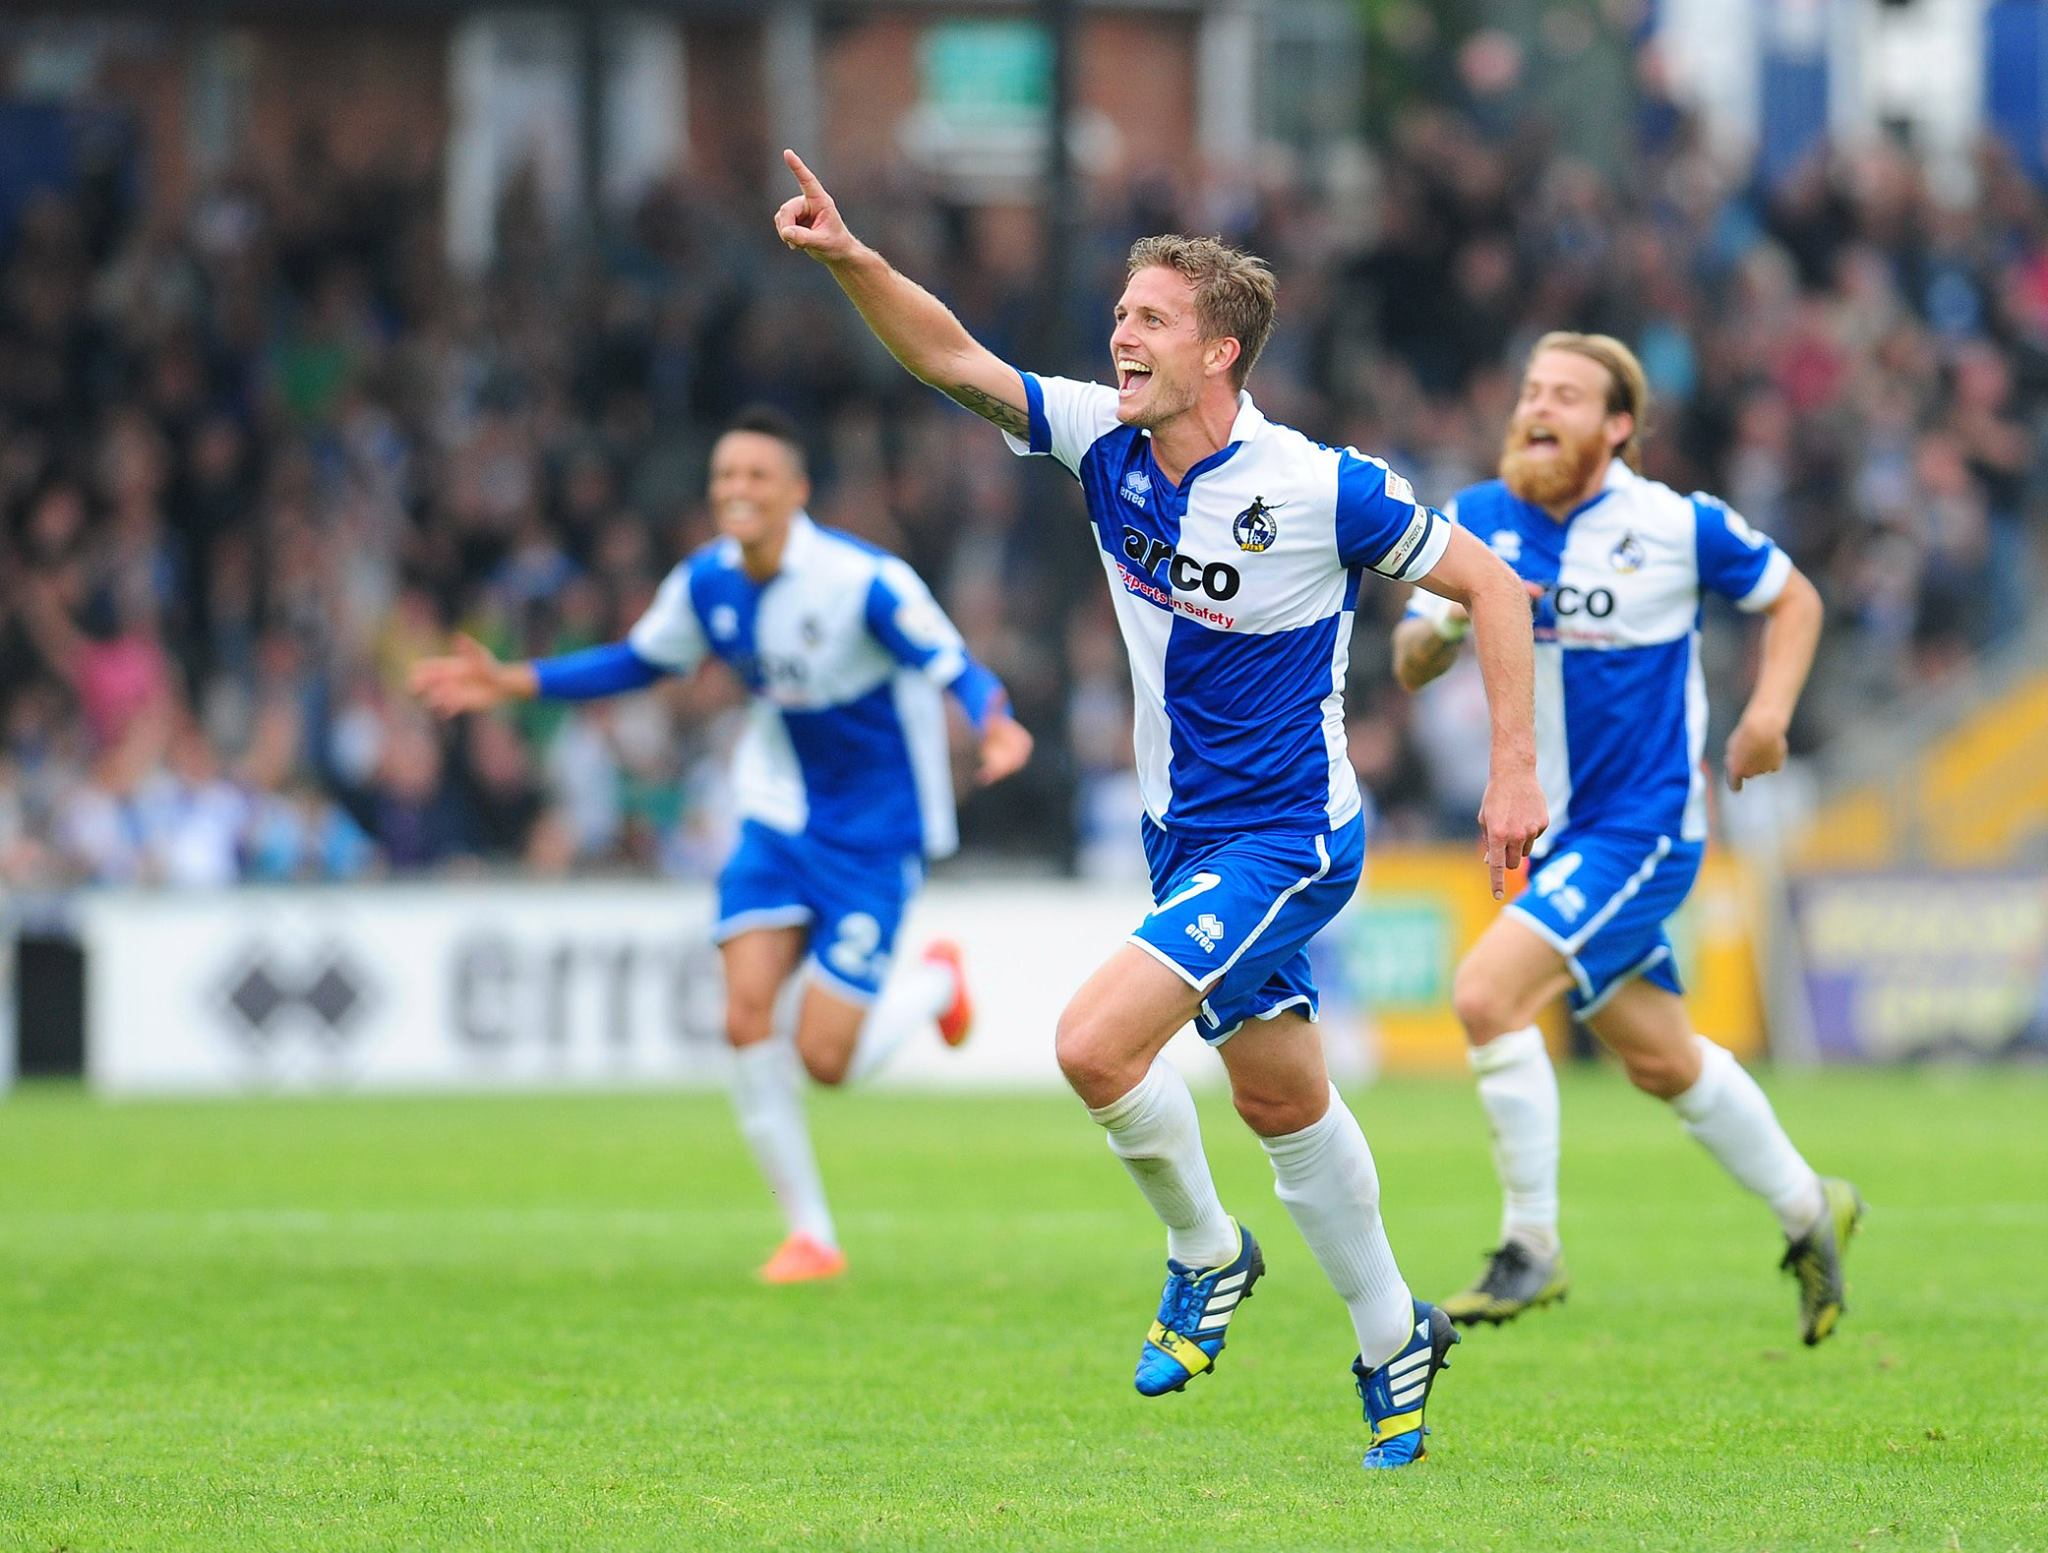 Dover & Dover again – the ragged glory of Bristol Rovers